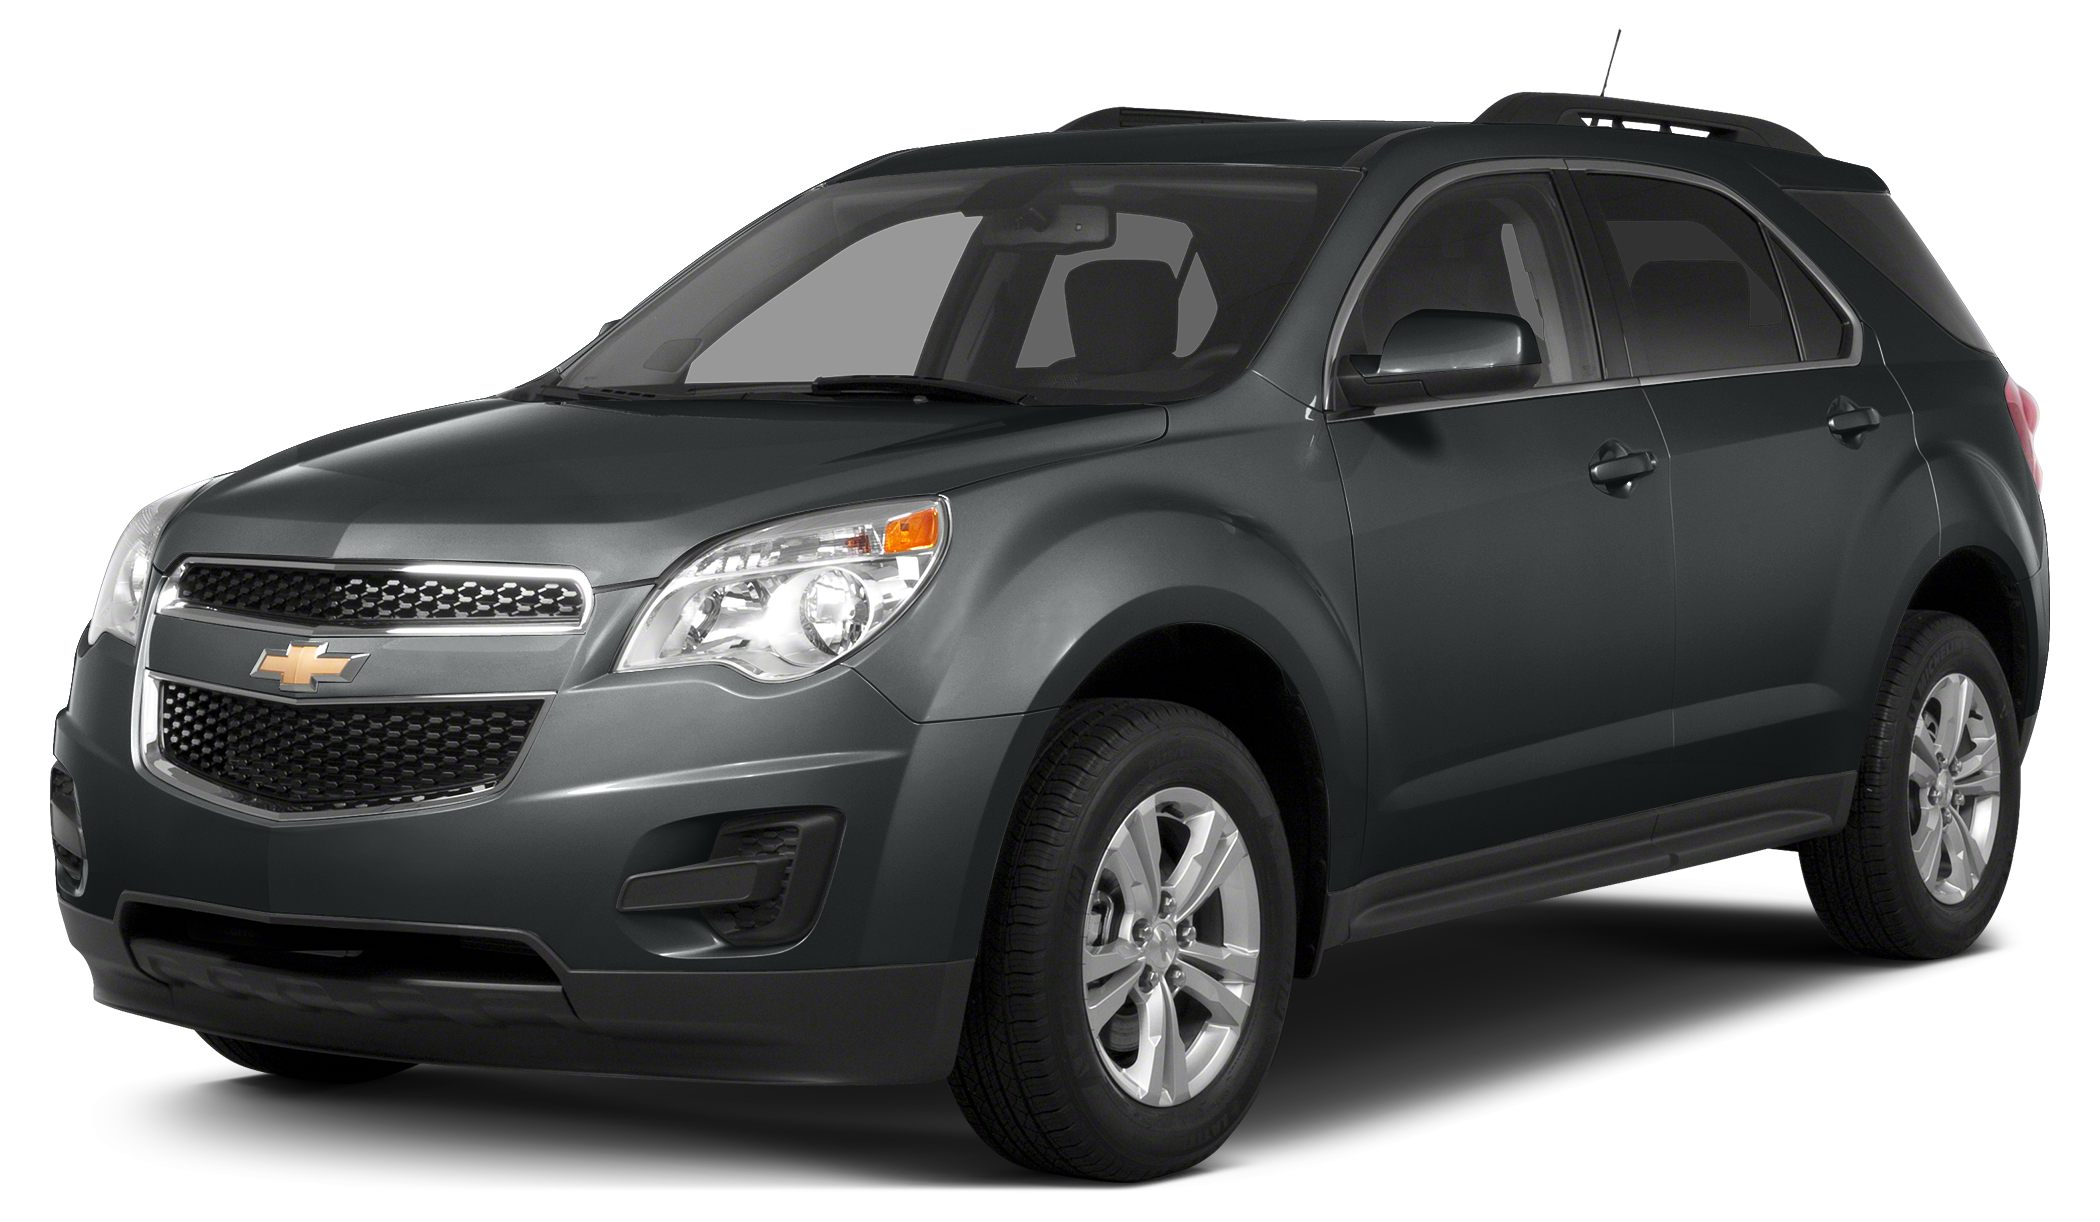 2013 Chevrolet Equinox 2LT Excellent Condition EPA 29 MPG Hwy20 MPG City Heated Leather Seats S